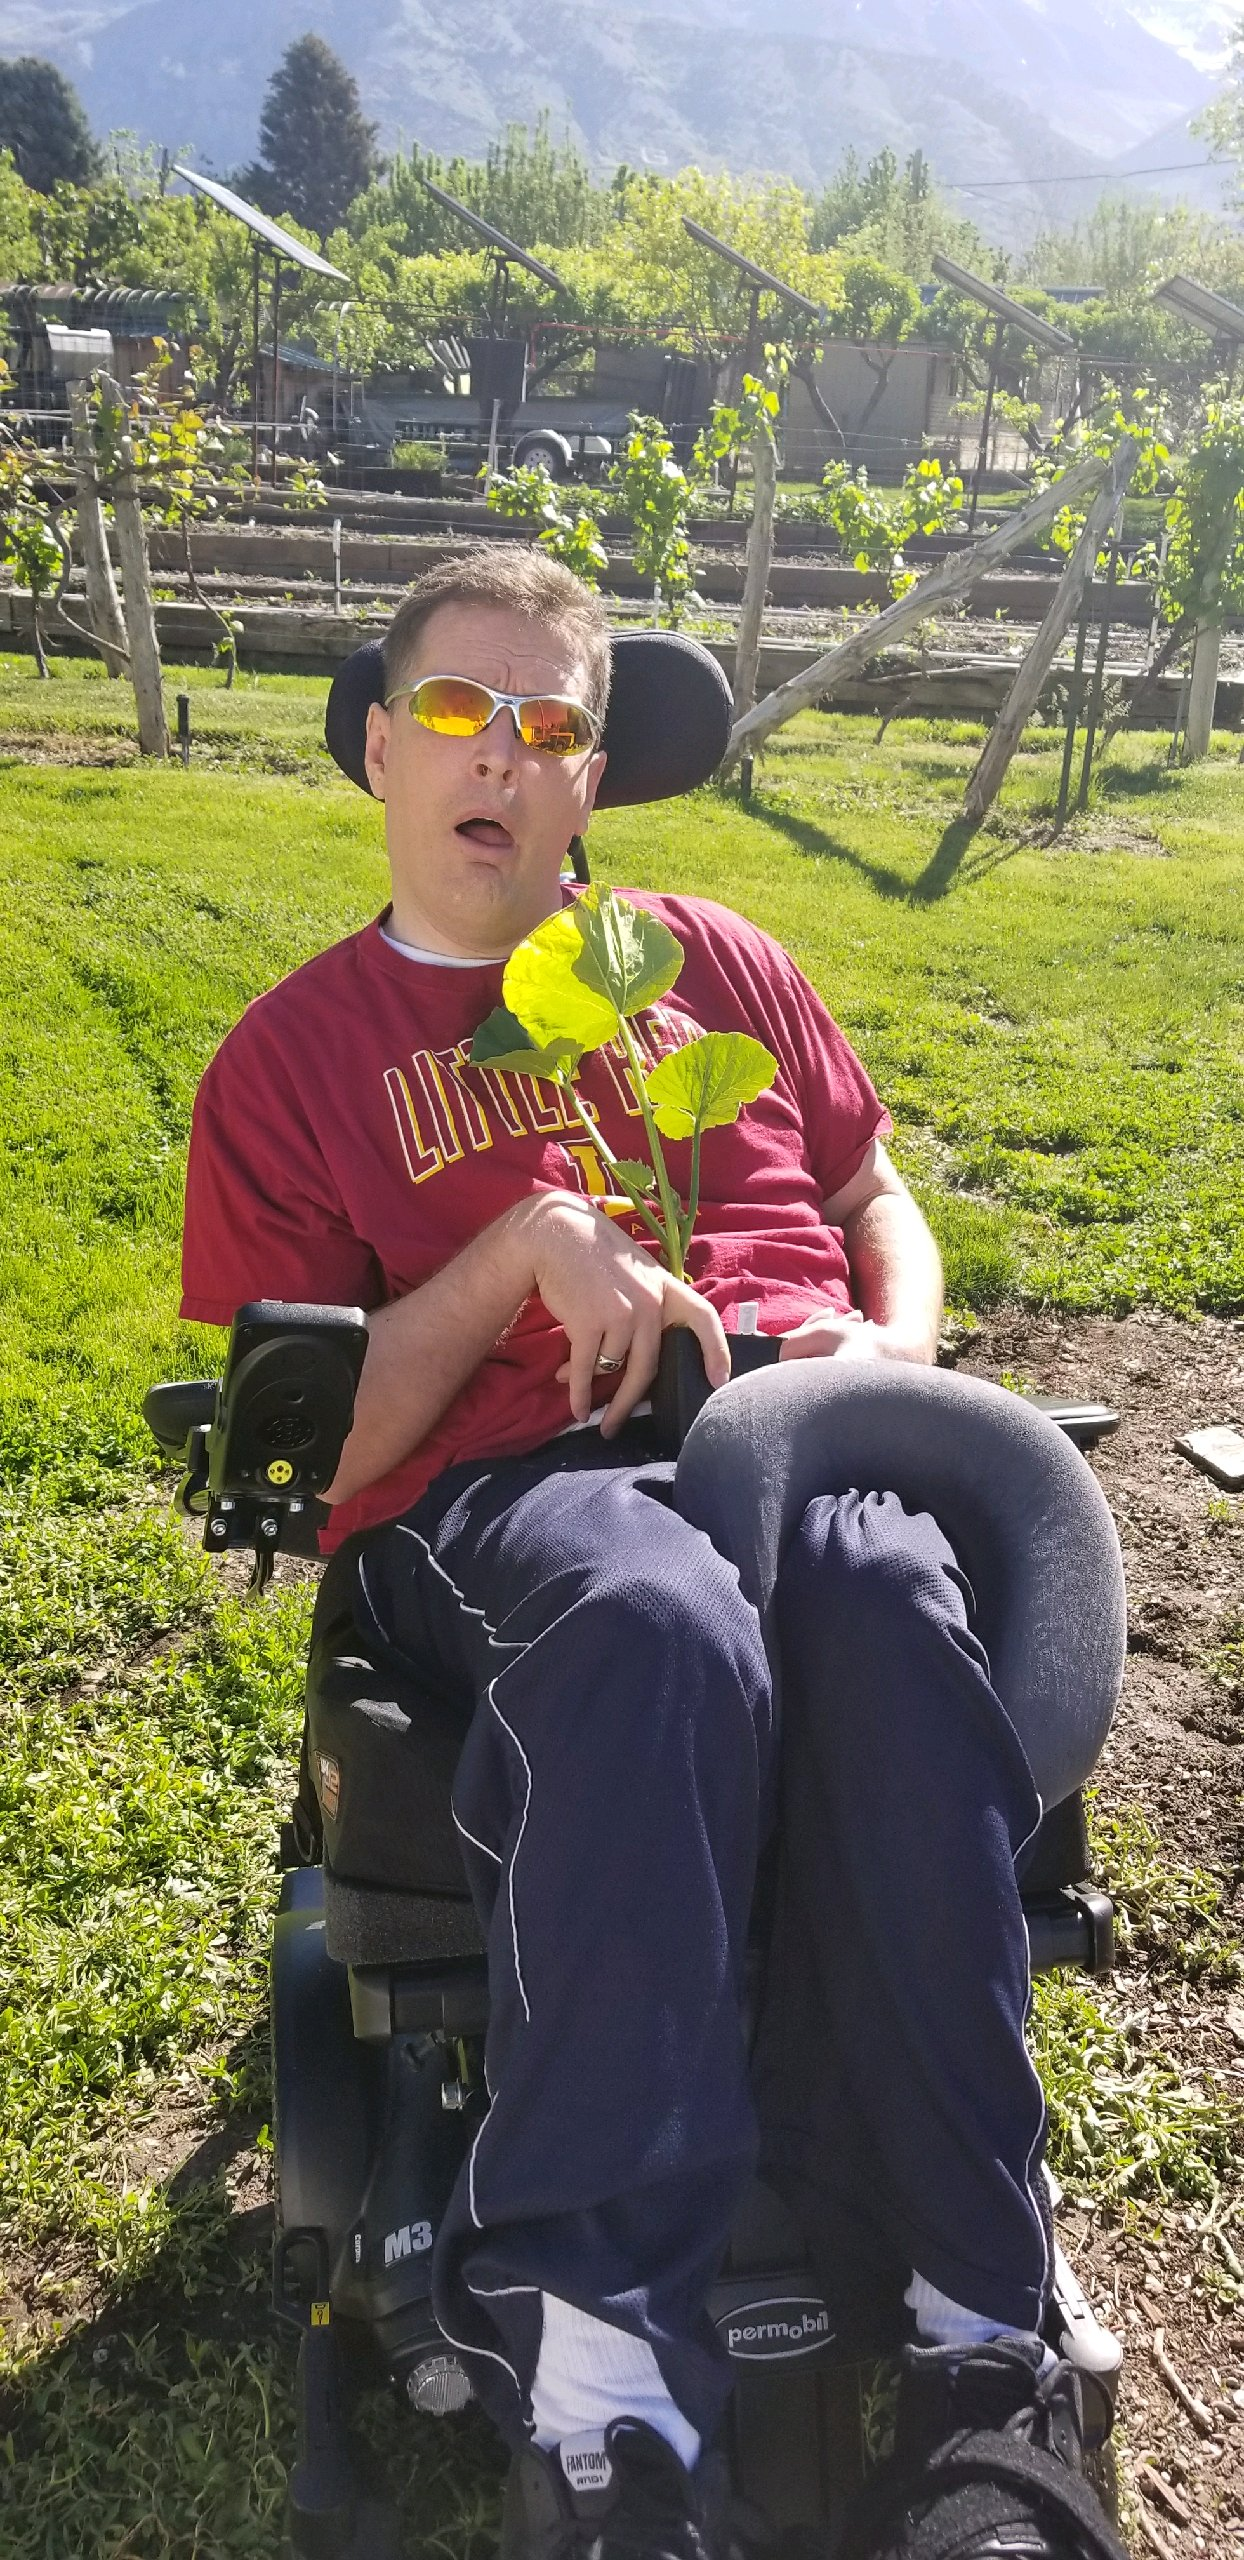 Orin Vooheis holds a pumpkin plant before planting in the garden. More than 20 years after being shot in the head on his mission, Voorheis is living a happy life surrounded by family and friends.